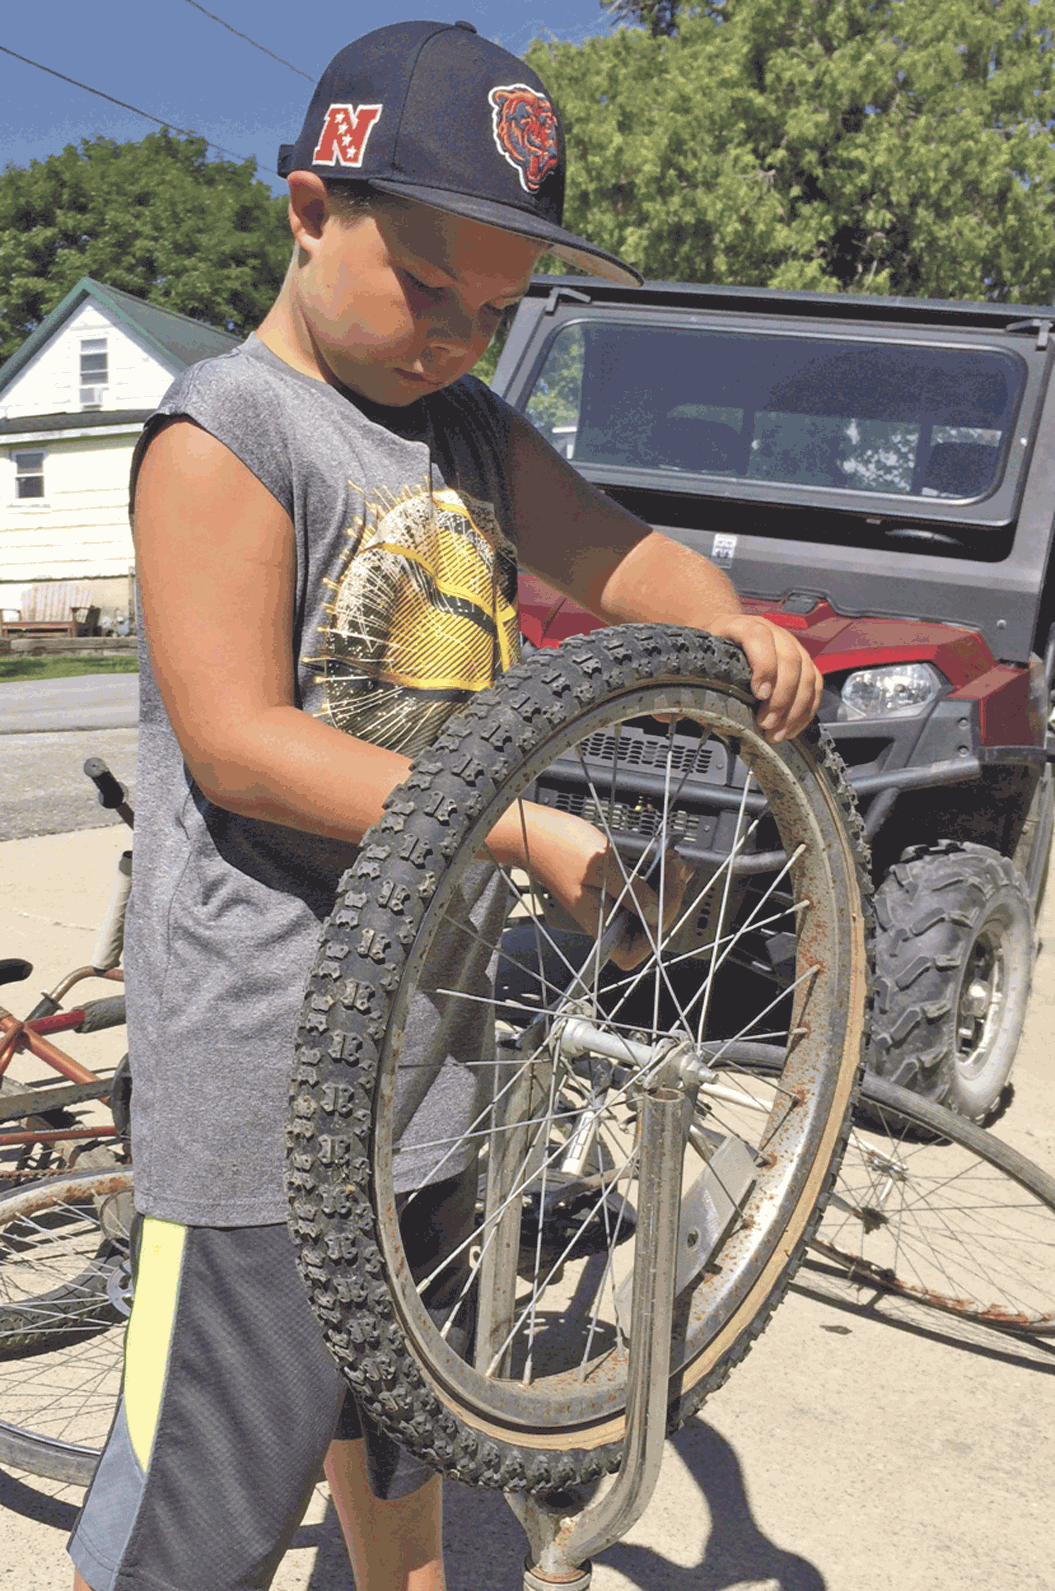 p.p1 {margin: 0.0px 0.0px 10.0px 0.0px; font: 12.0px Cambria}span.s1 {font: 10.0px Cambria}	Jackson Goltz of Ossian helps prepare for RAGBRAI, which will be rolling through town Friday morning. A full slate of fun and activities are planned for the big day, including food, music, and...